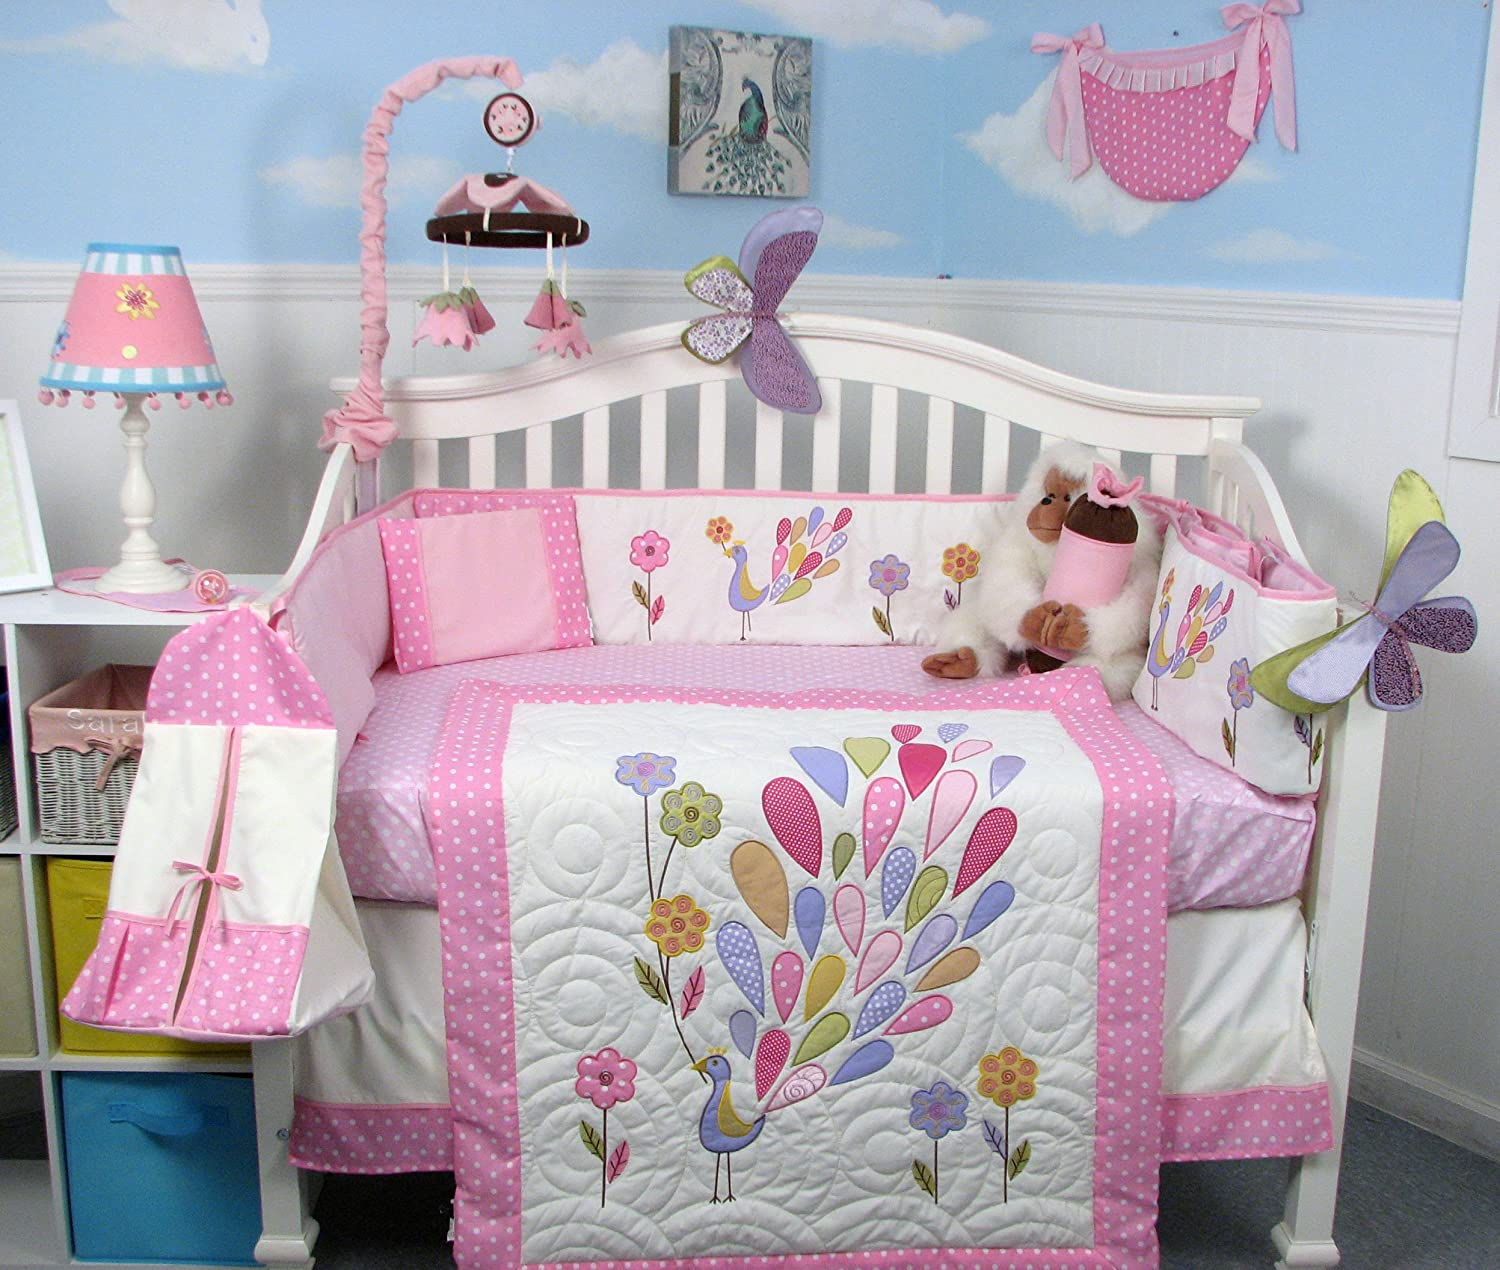 Baby fashion and bedding 5